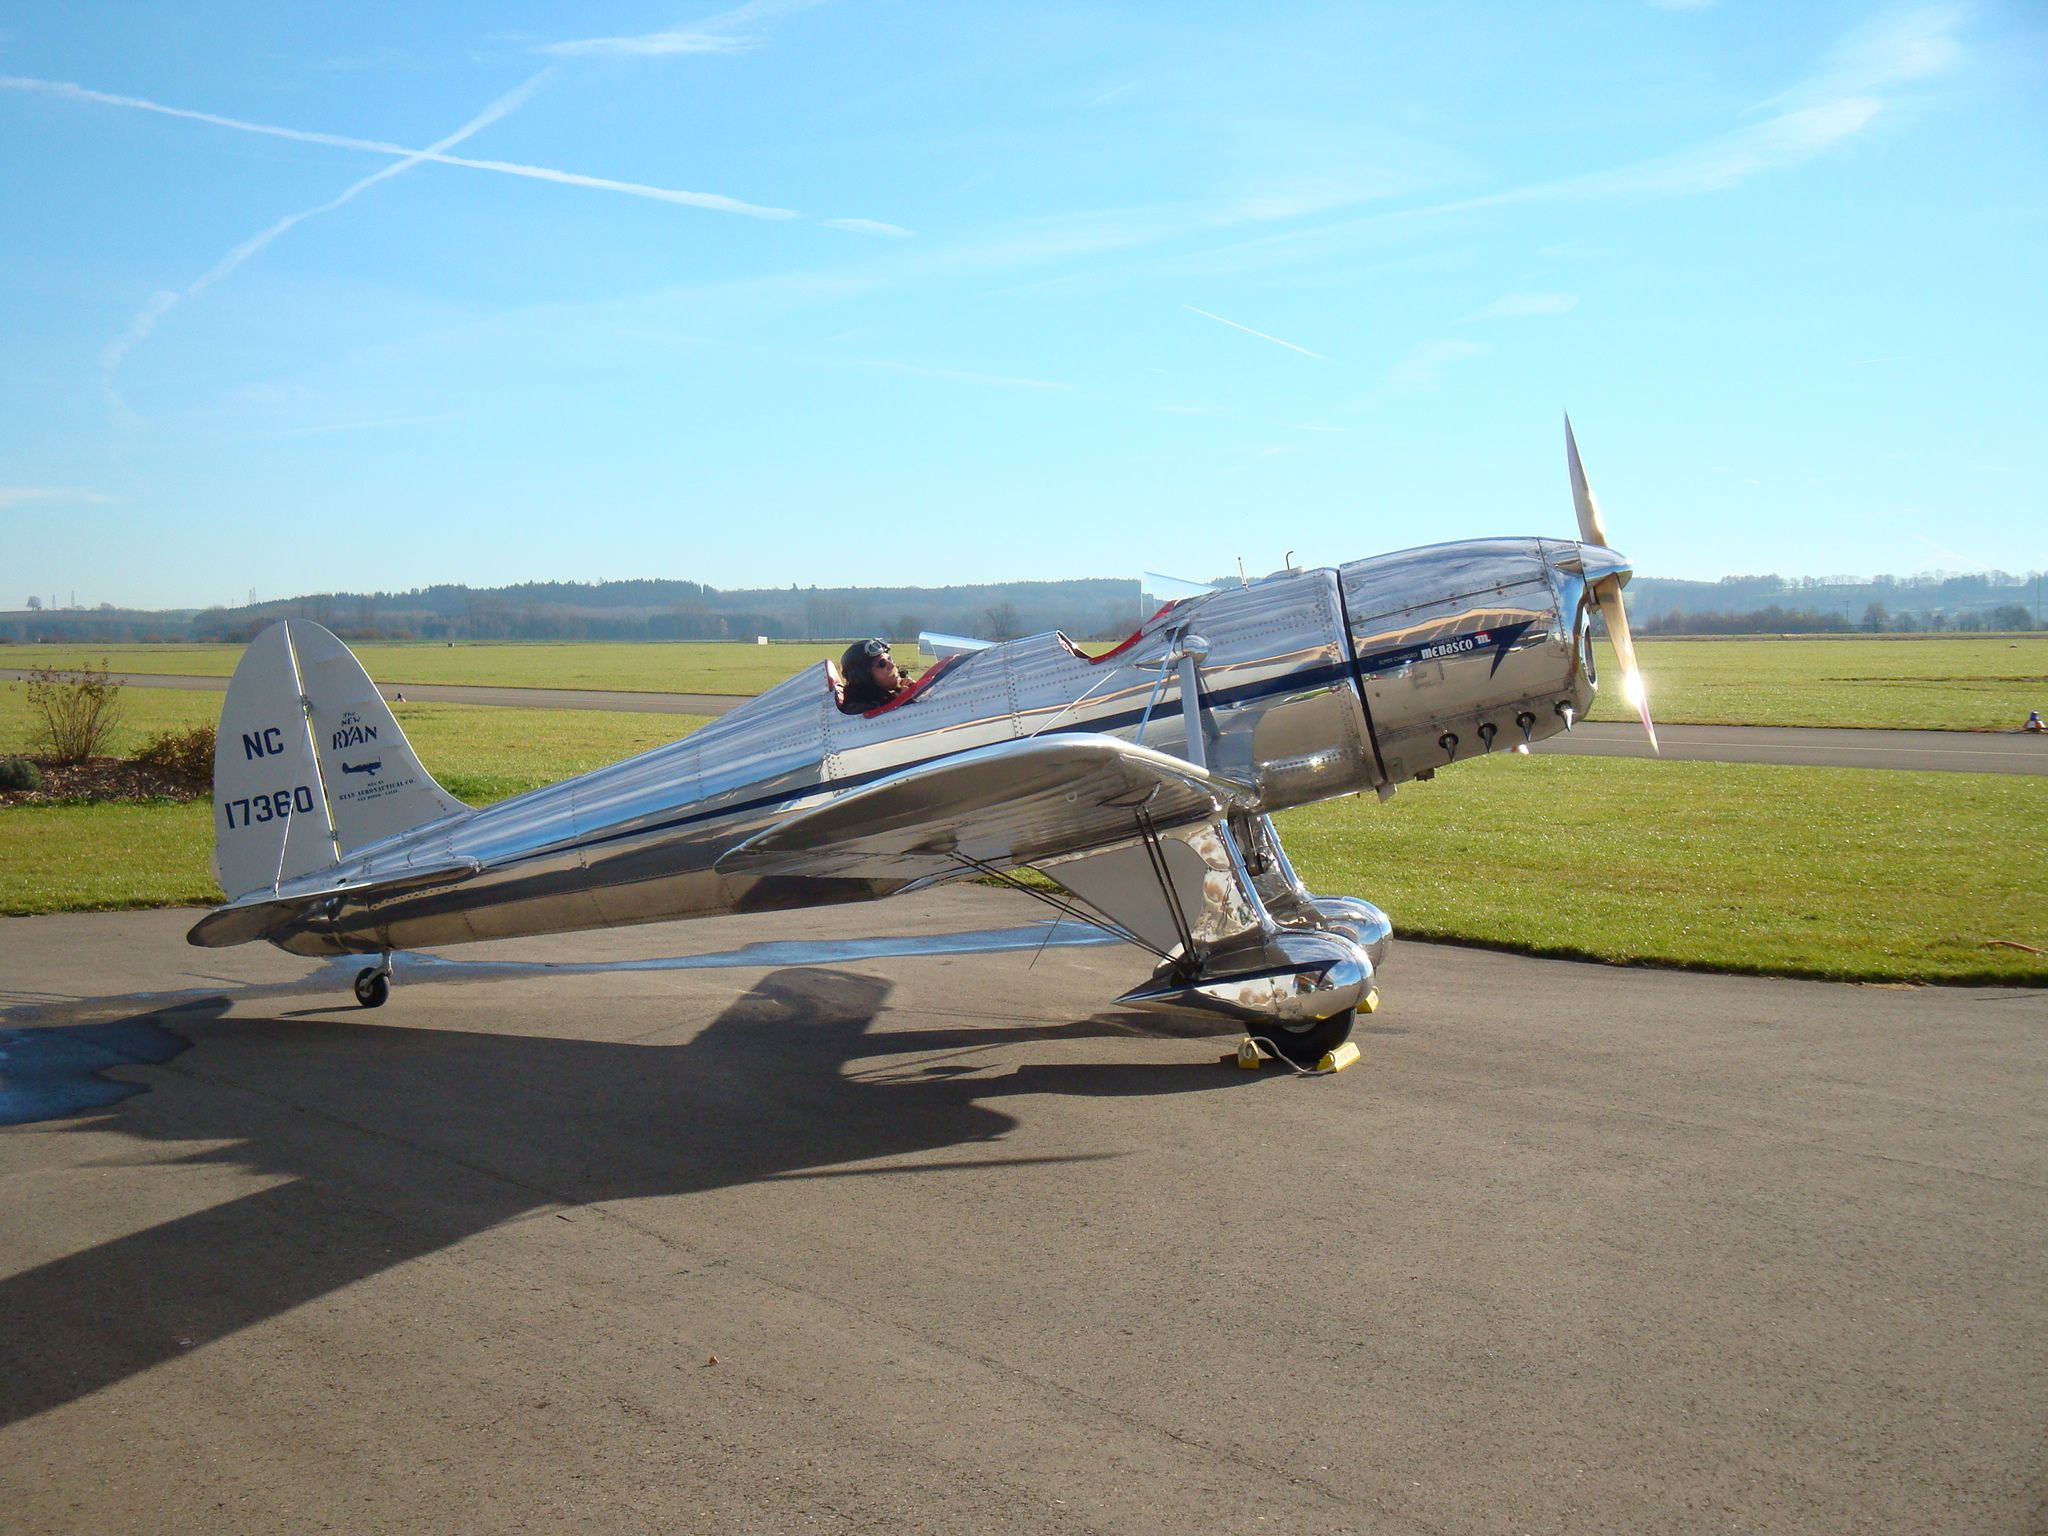 Google Image Result for http://www.antique-aeroflyers.de/DSC01591.JPG